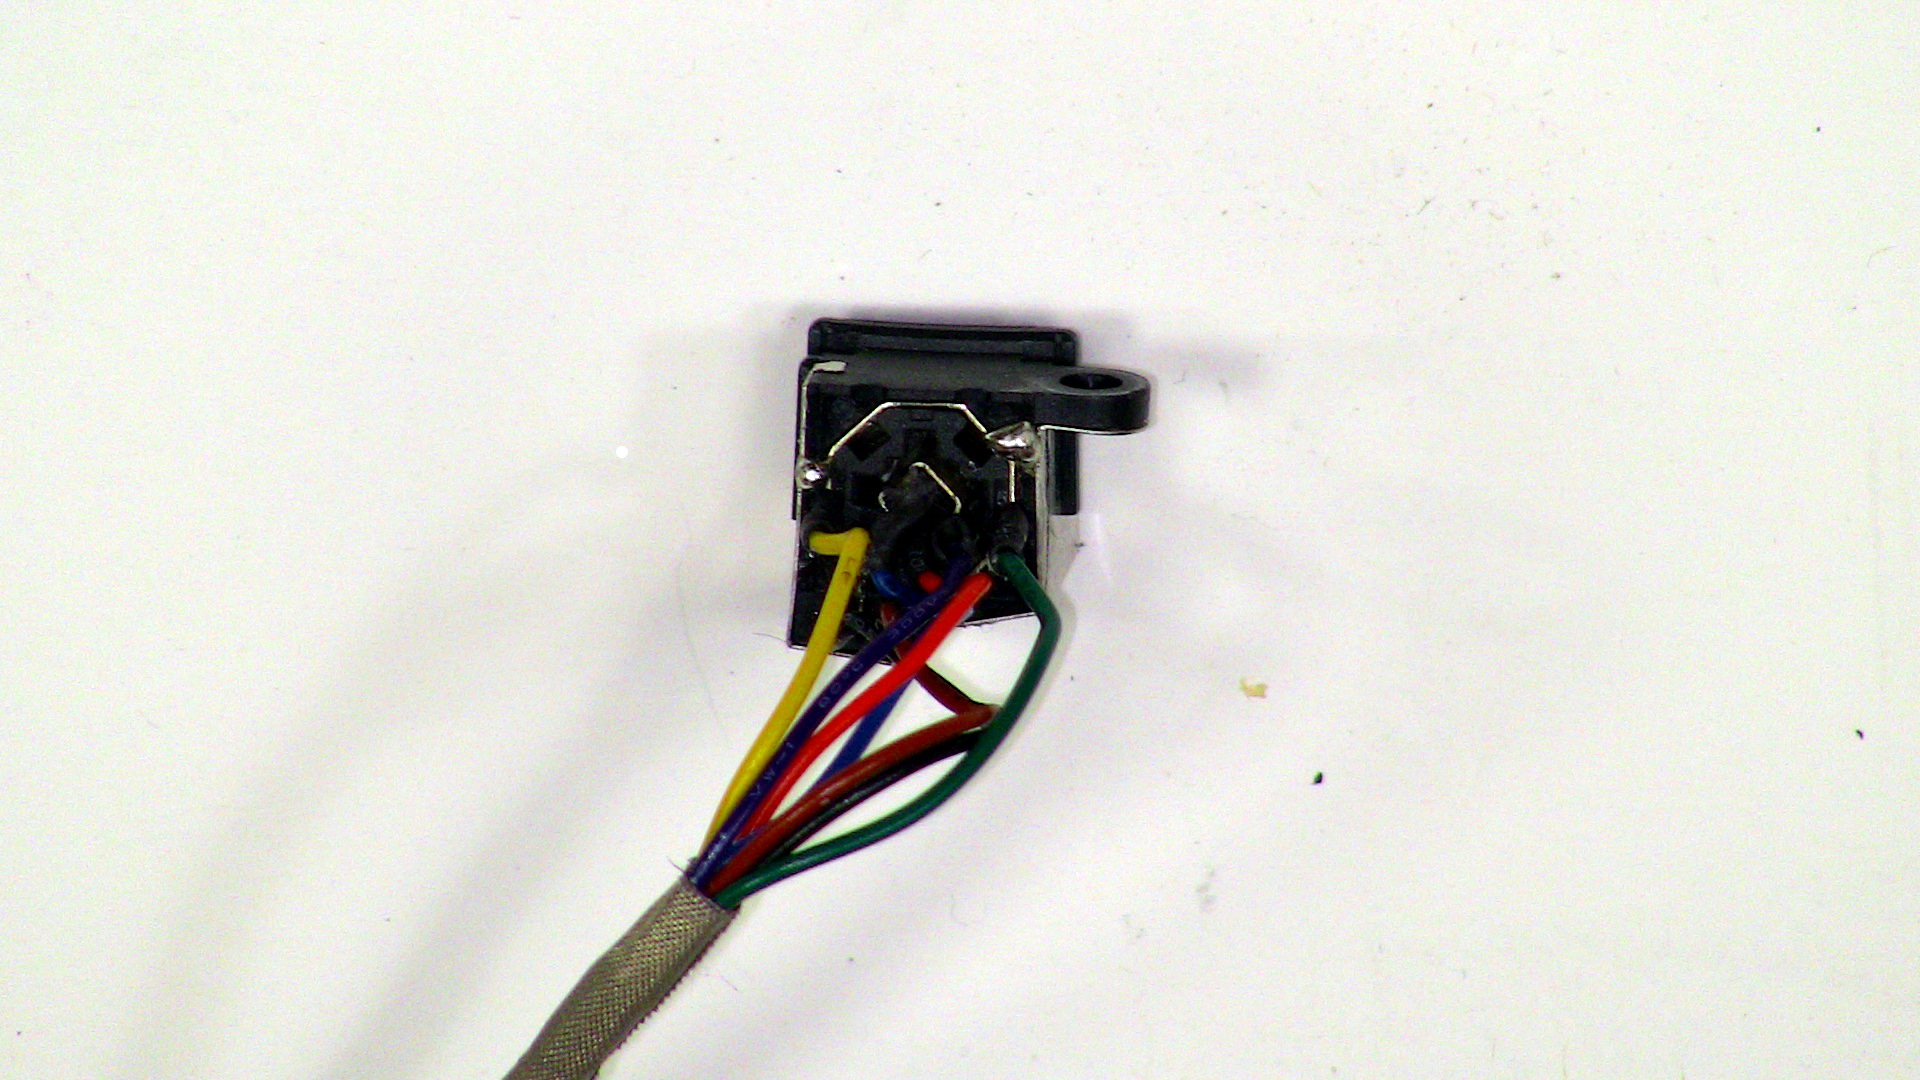 1535 1537DC_Jack2 dell studio 1535 1536 1537 dc jack pinout images dc power jack wiring diagram at n-0.co